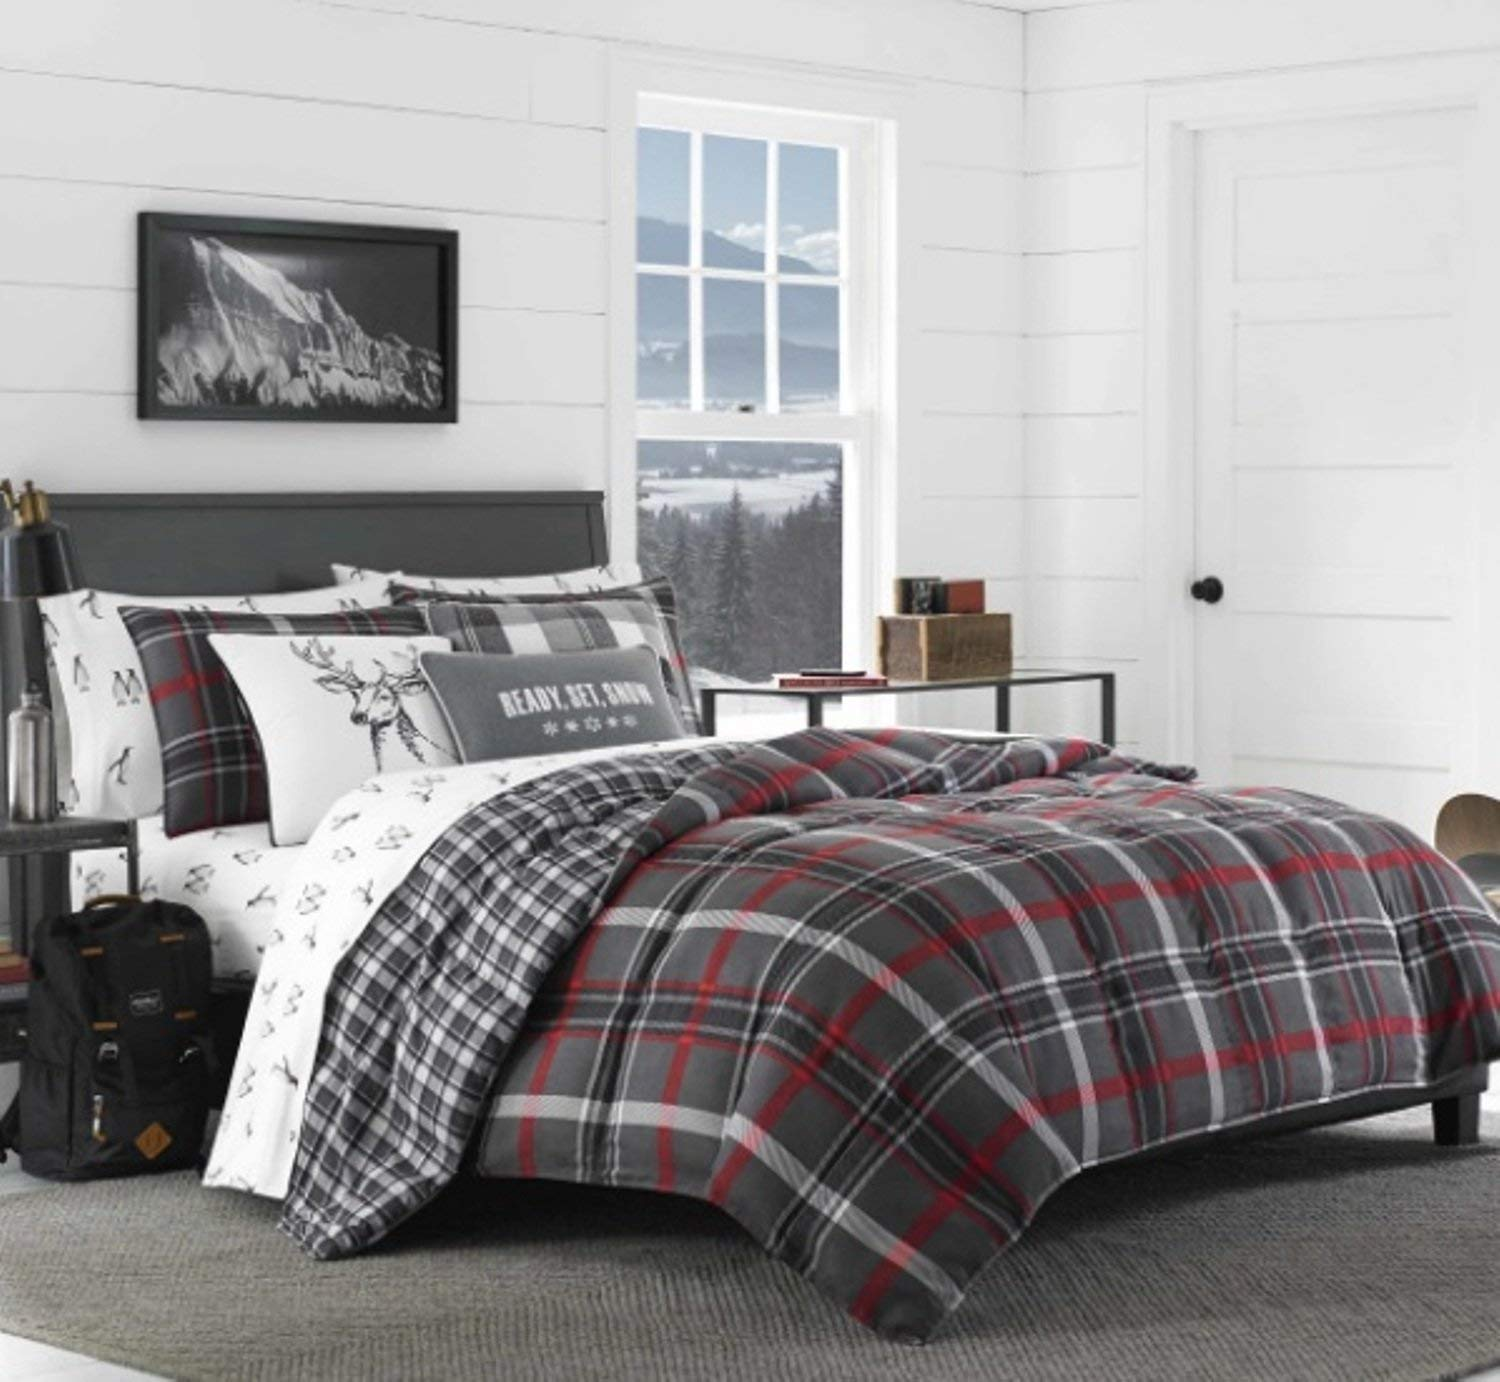 3 Piece Reversible Plaid Patterned Comforter Set King Size, Featuring Horizontal Vertical Lines Deer Design Comfortable Bedding, Stylish Lodge Cabin Inspired Boys Bedroom, Grey, Red, Multicolor